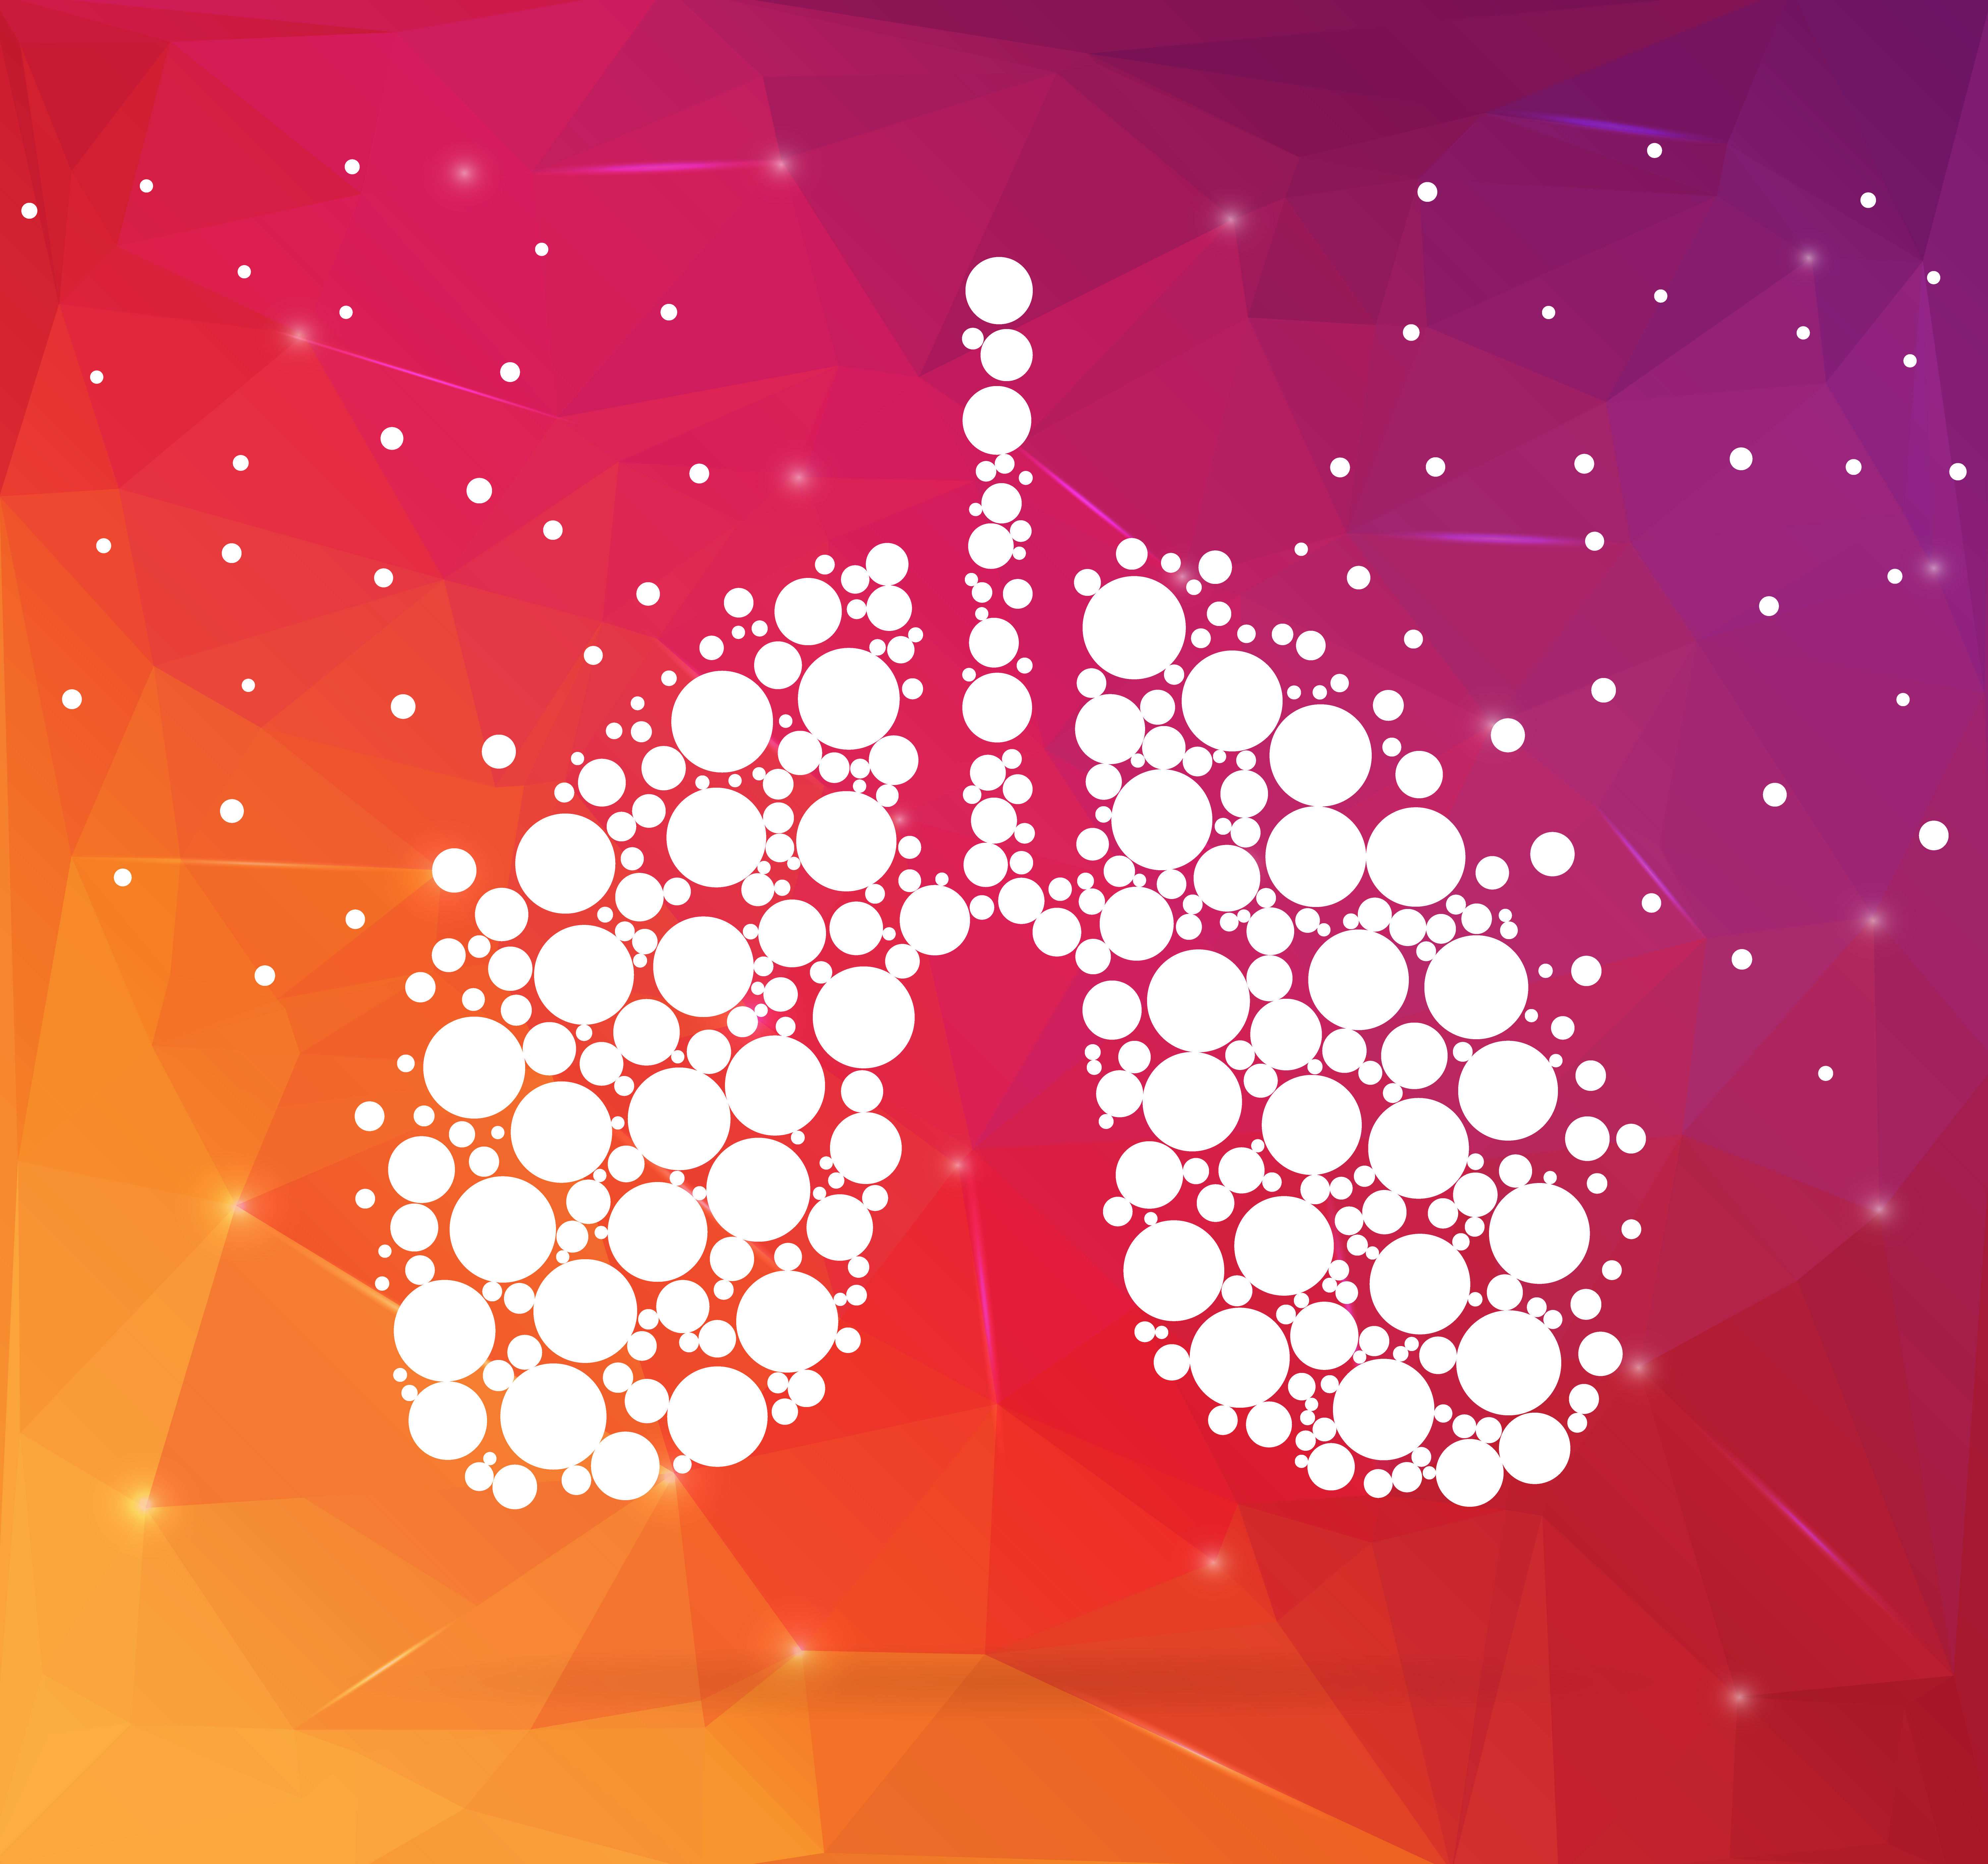 Roflumilast Reduces Airway Inflammation in Asthma Patients